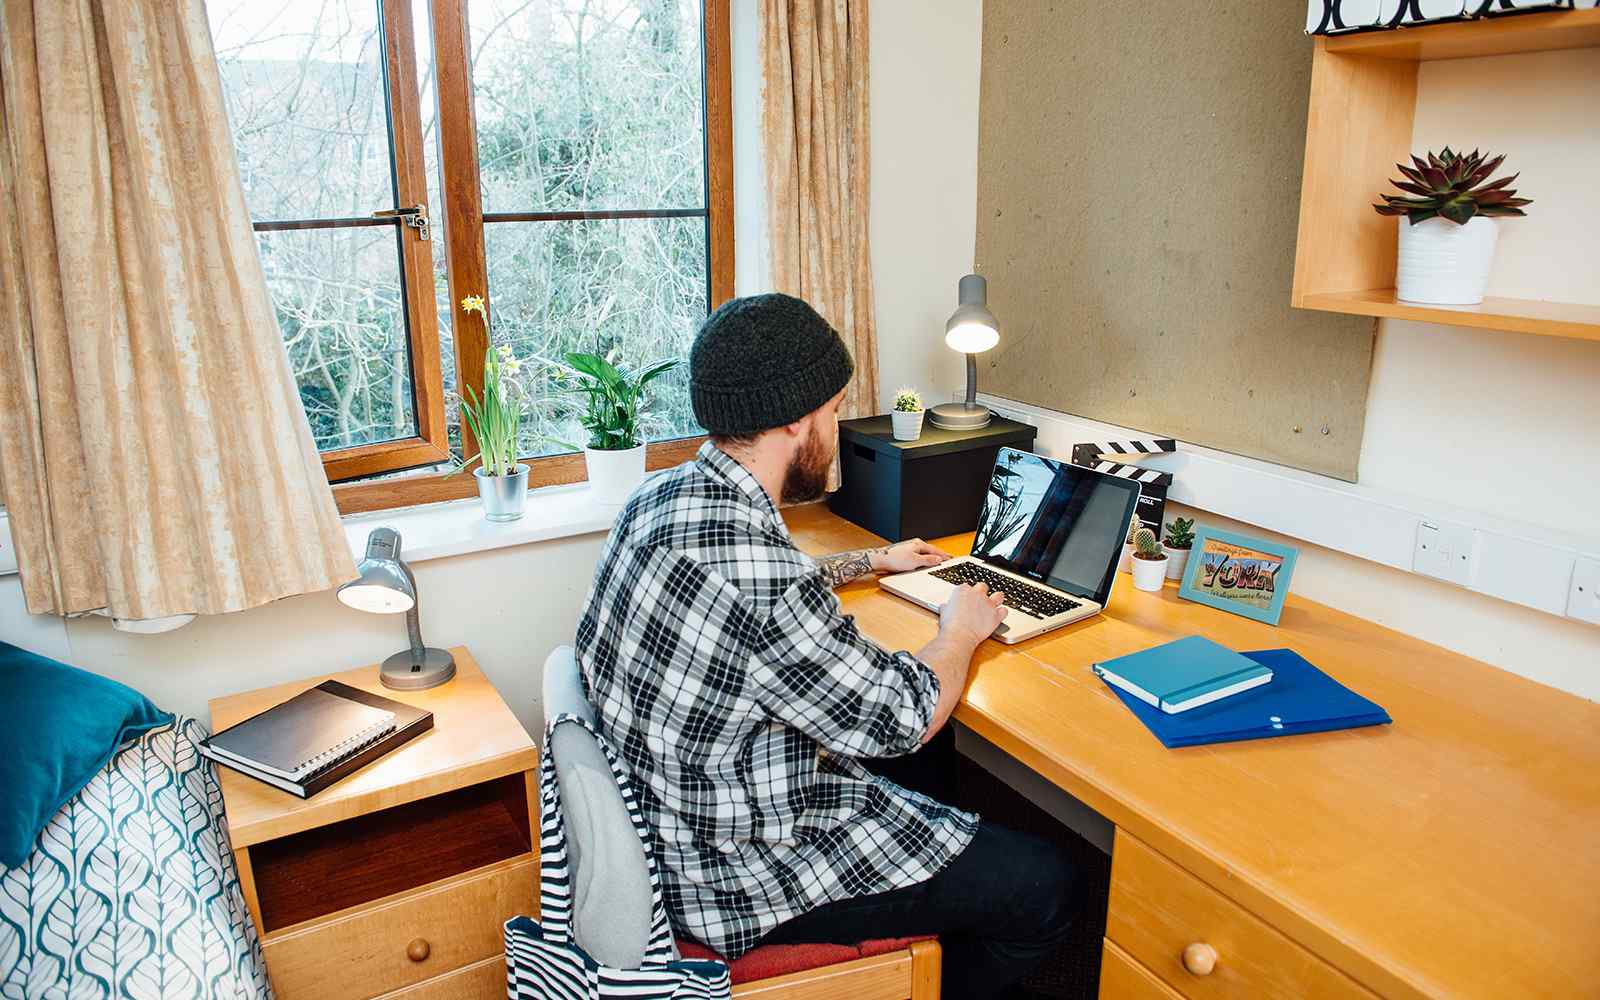 A student working on a laptop from accommodation at Limes Court